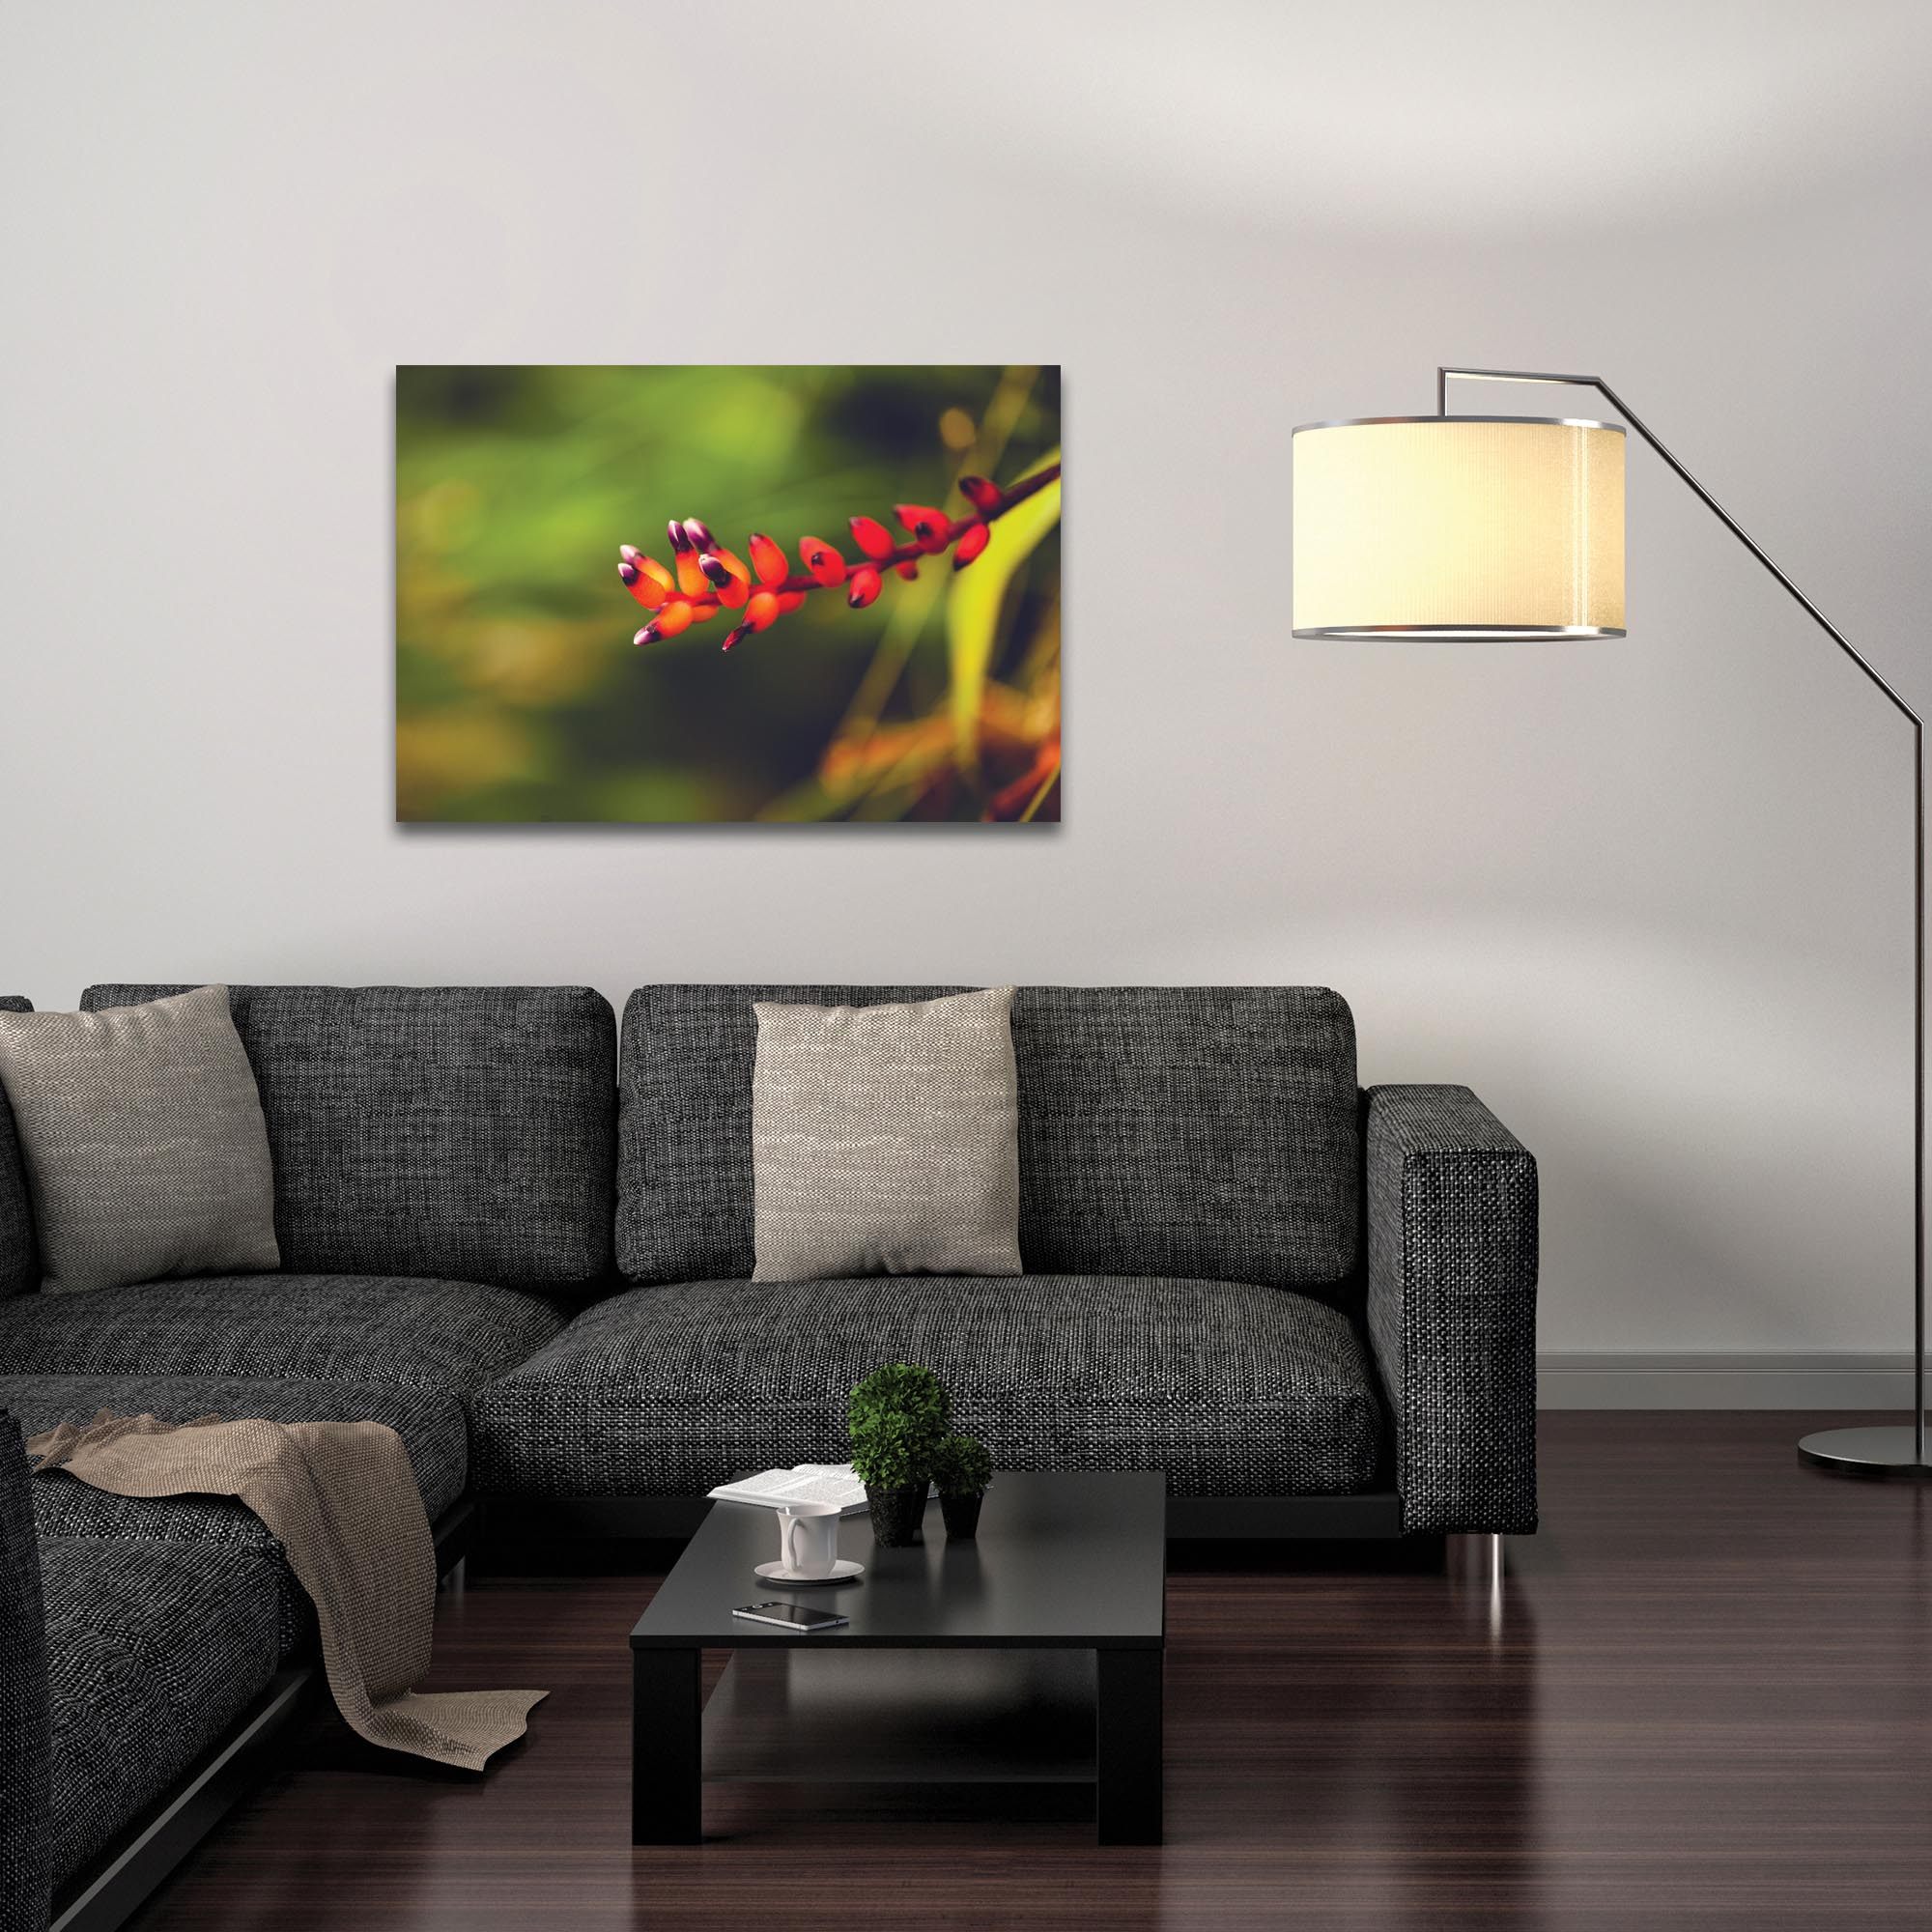 Nature Photography 'Ready to Bloom' - Flower Blossom Art on Metal or Plexiglass - Lifestyle View